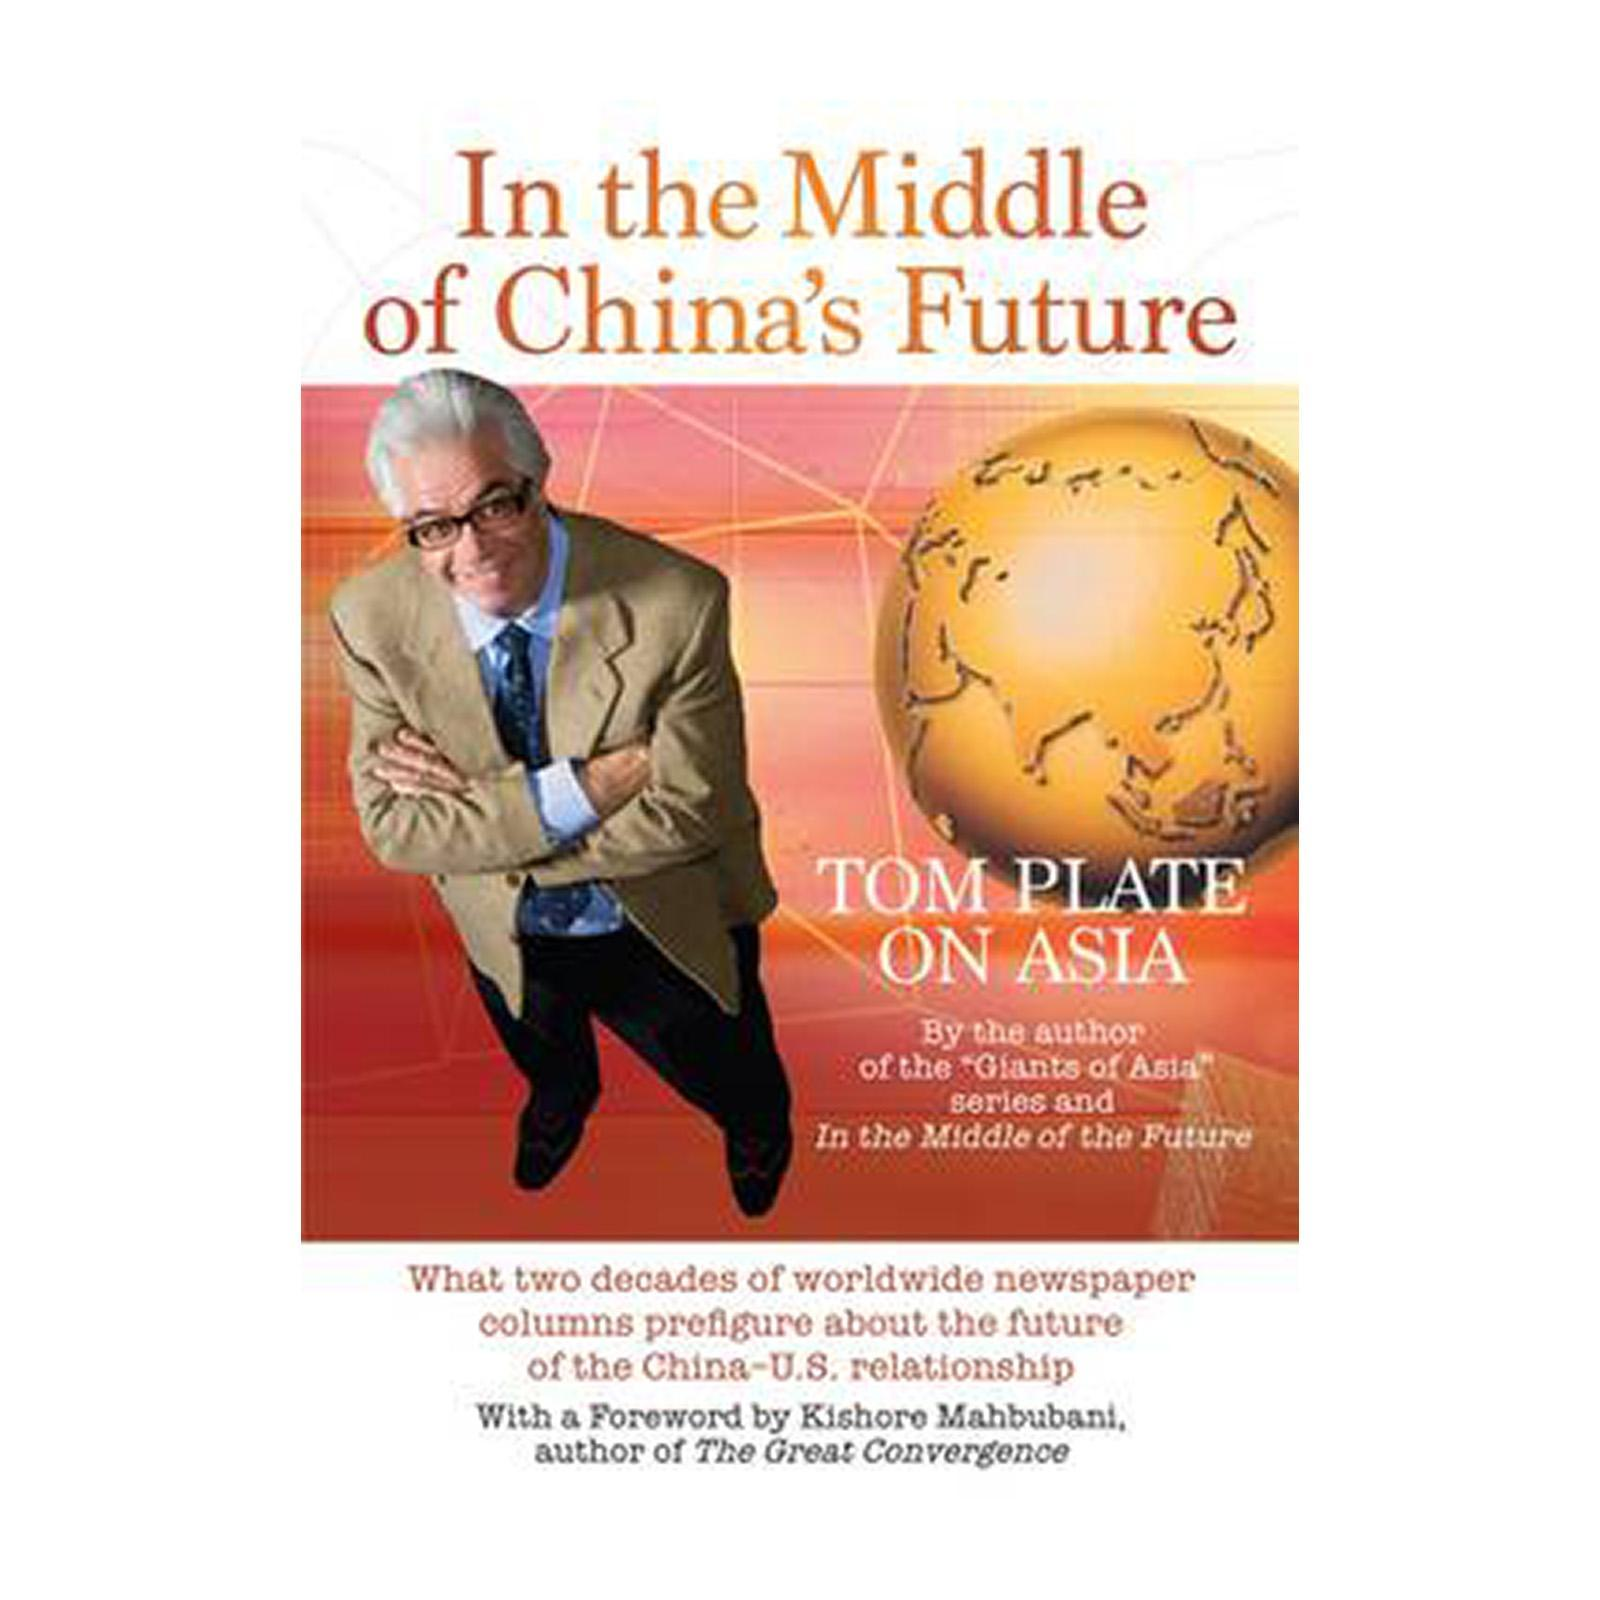 In The Middle Of Chinas Future: What Two Decades Of Worldwide Newspaper Columns Prefigure About The Future Of The China-U.S. Relationship (Paperback)